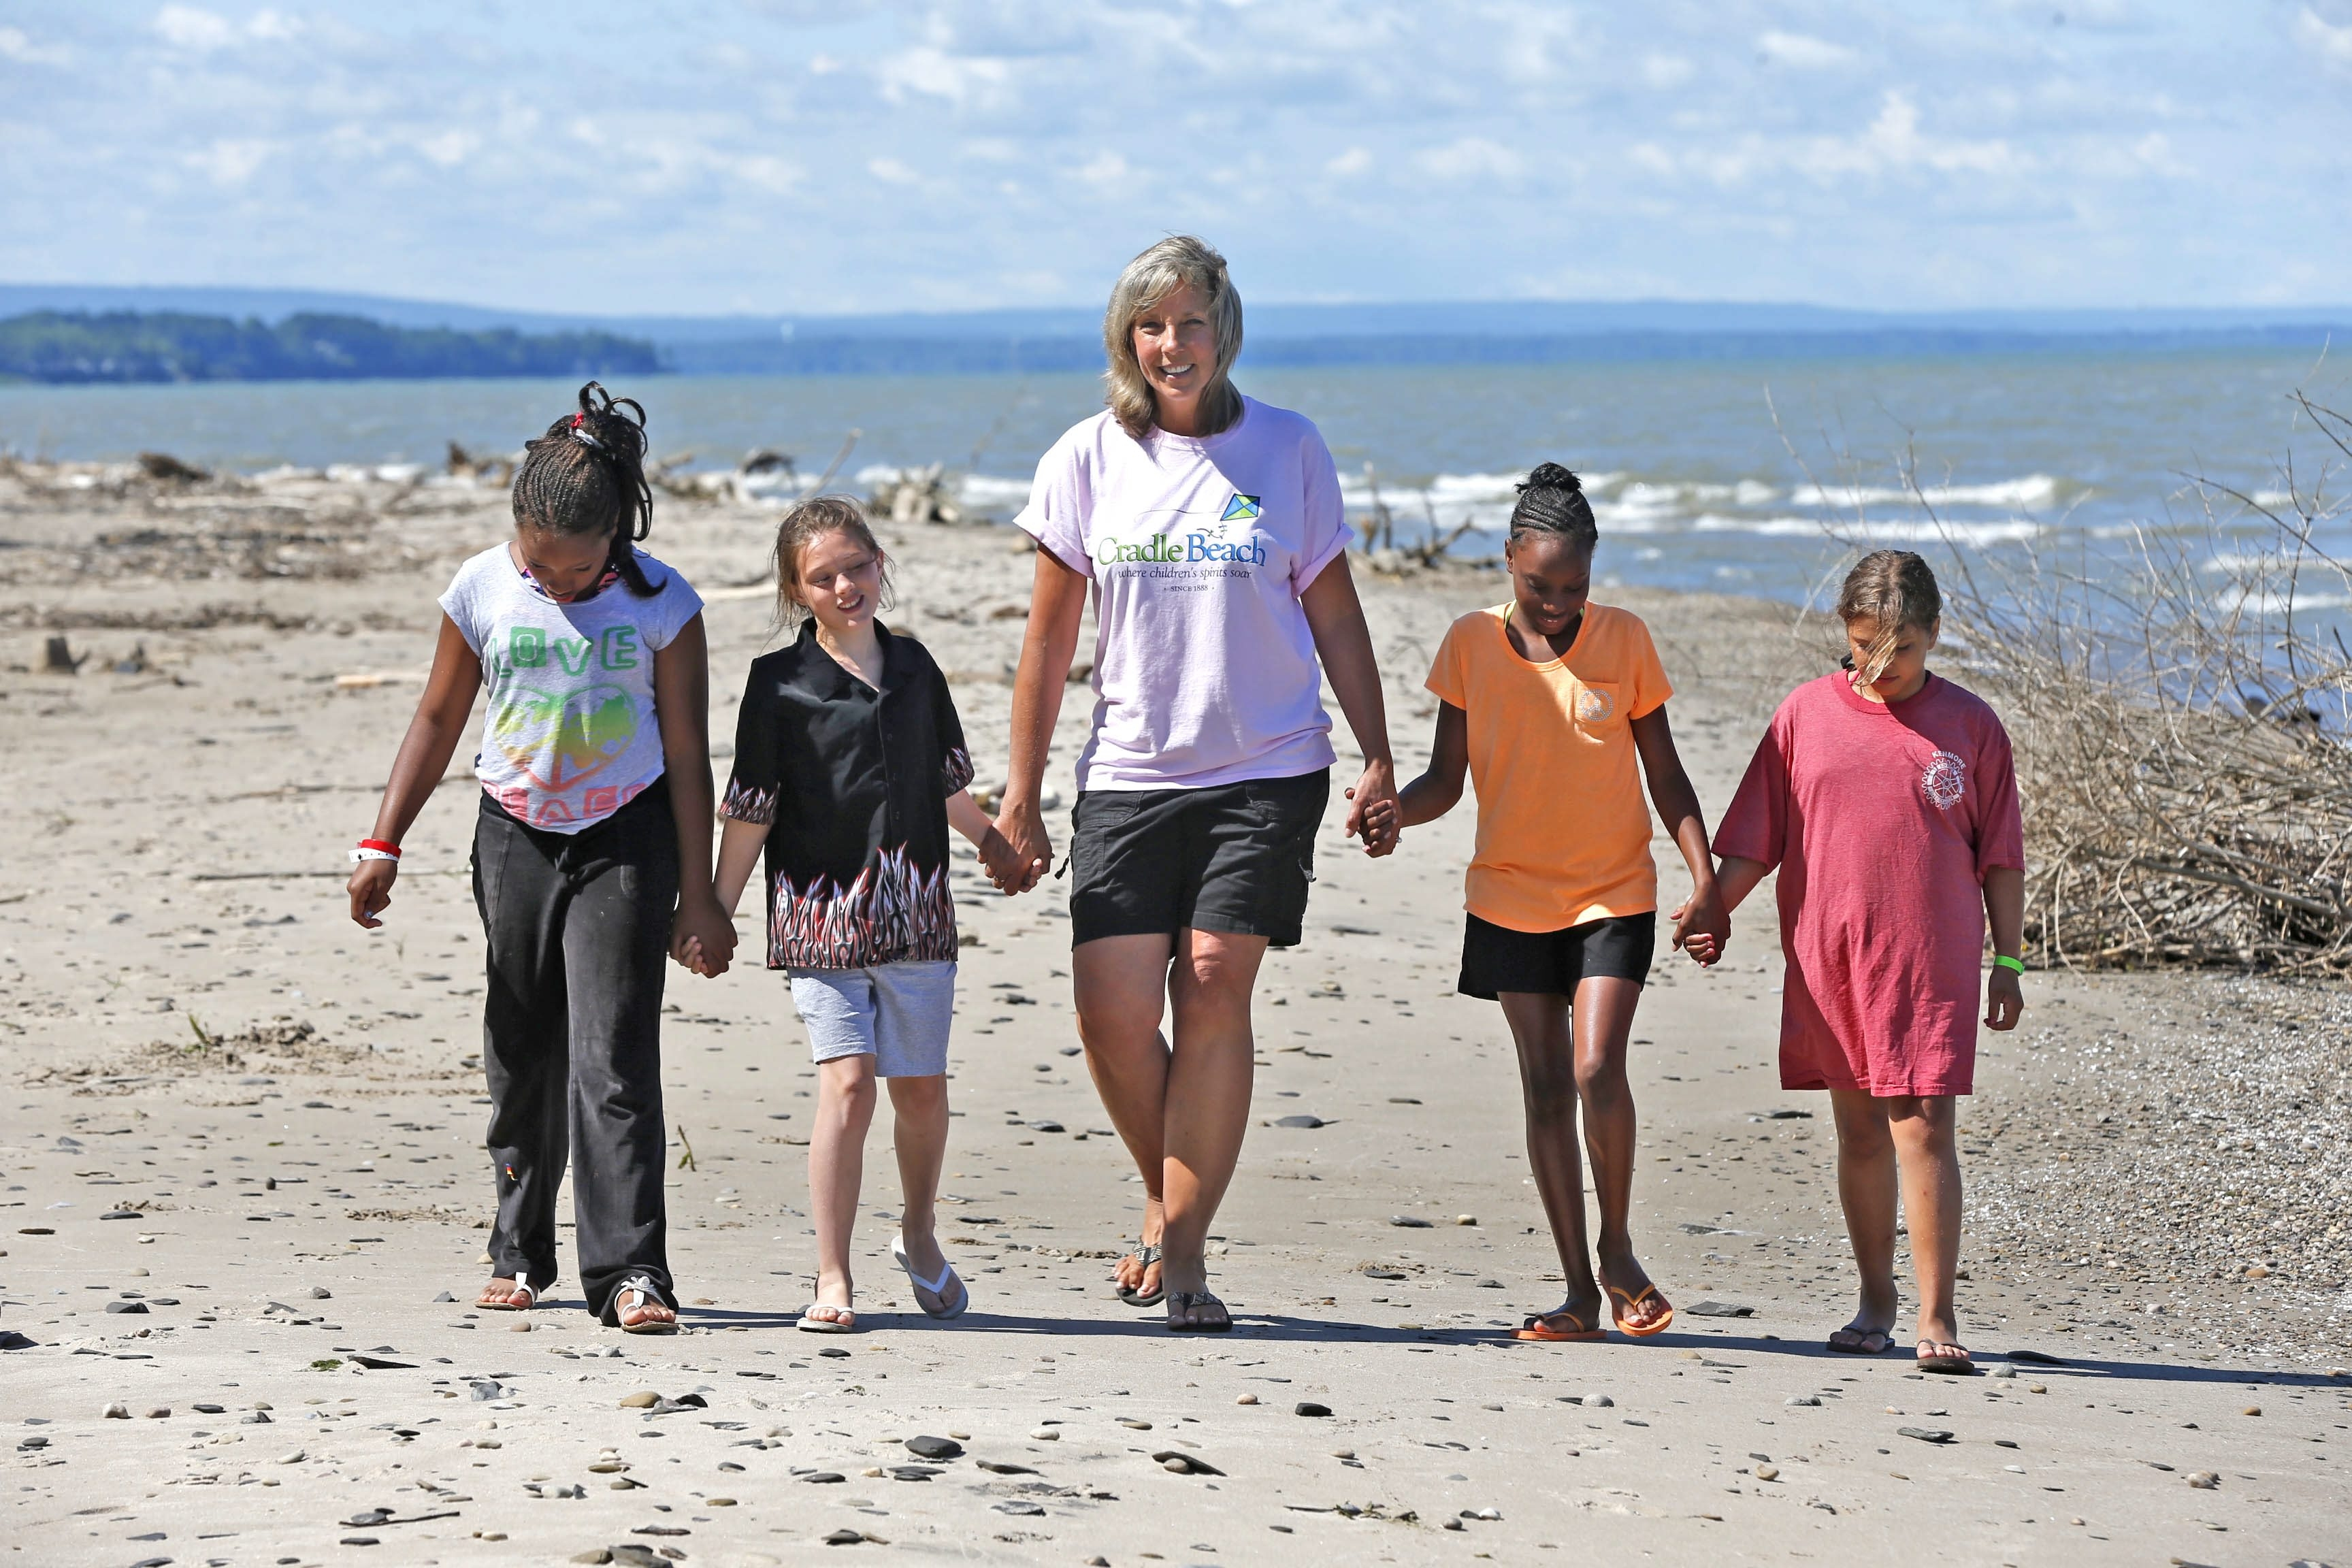 Lynn Kirshey, a special-ed coordinator at Niagara Charter School, helped raise money to send 15 Niagara Charter School students to Cradle Beach Camp this summer. Taking a walk with her are, from left, Diamond Davis-Hall, Jackie Phillips, Andrea Graham and Shyann Koziel.